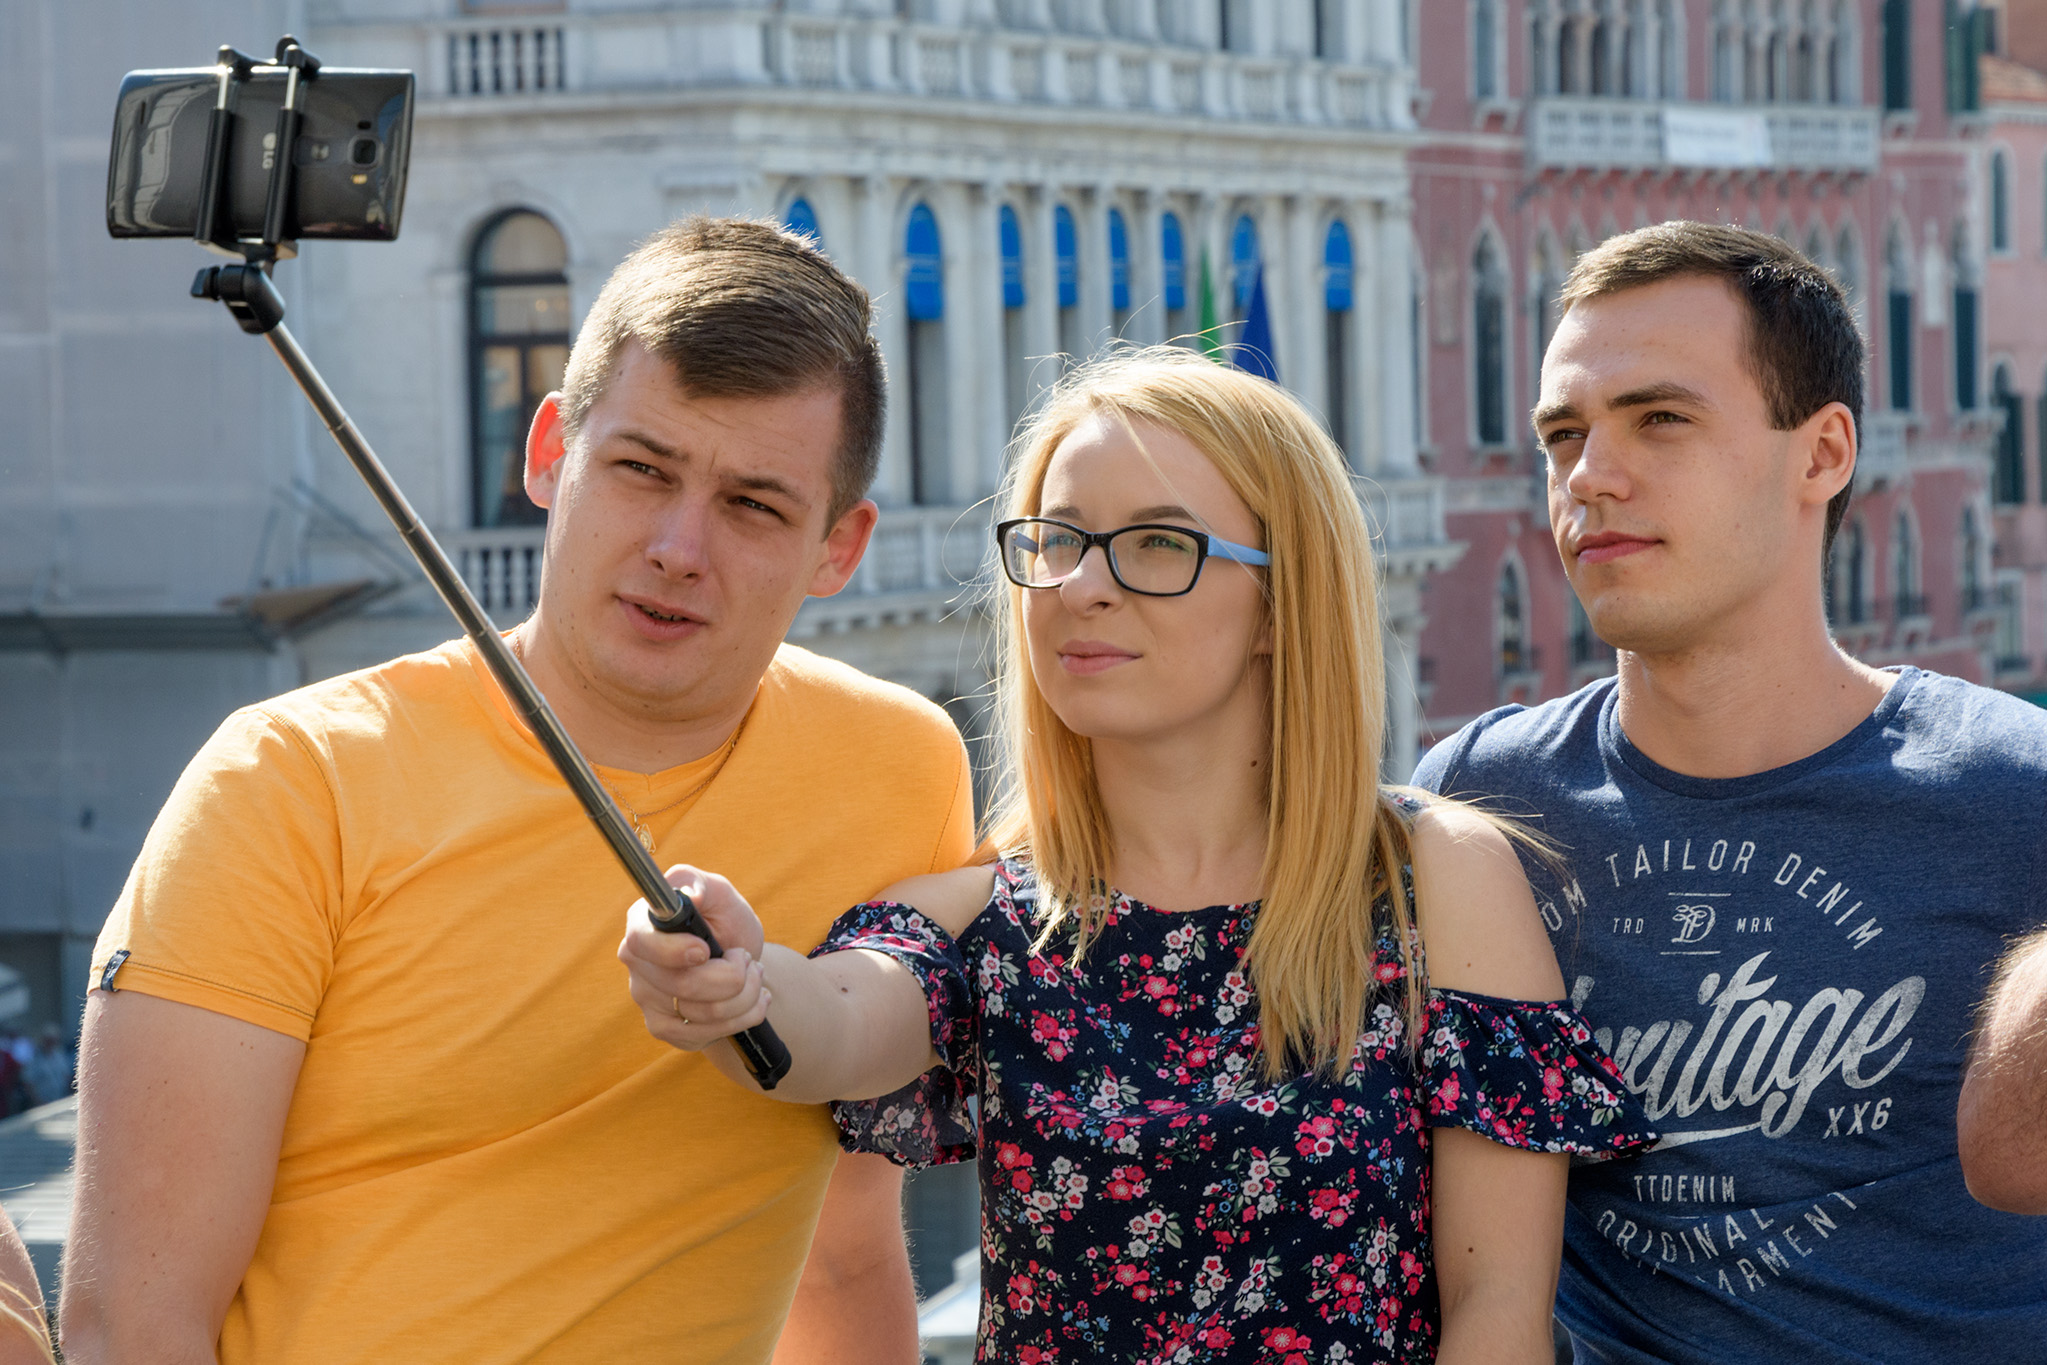 Visitors take selfies with the palazzo lined Grand Canal in the background